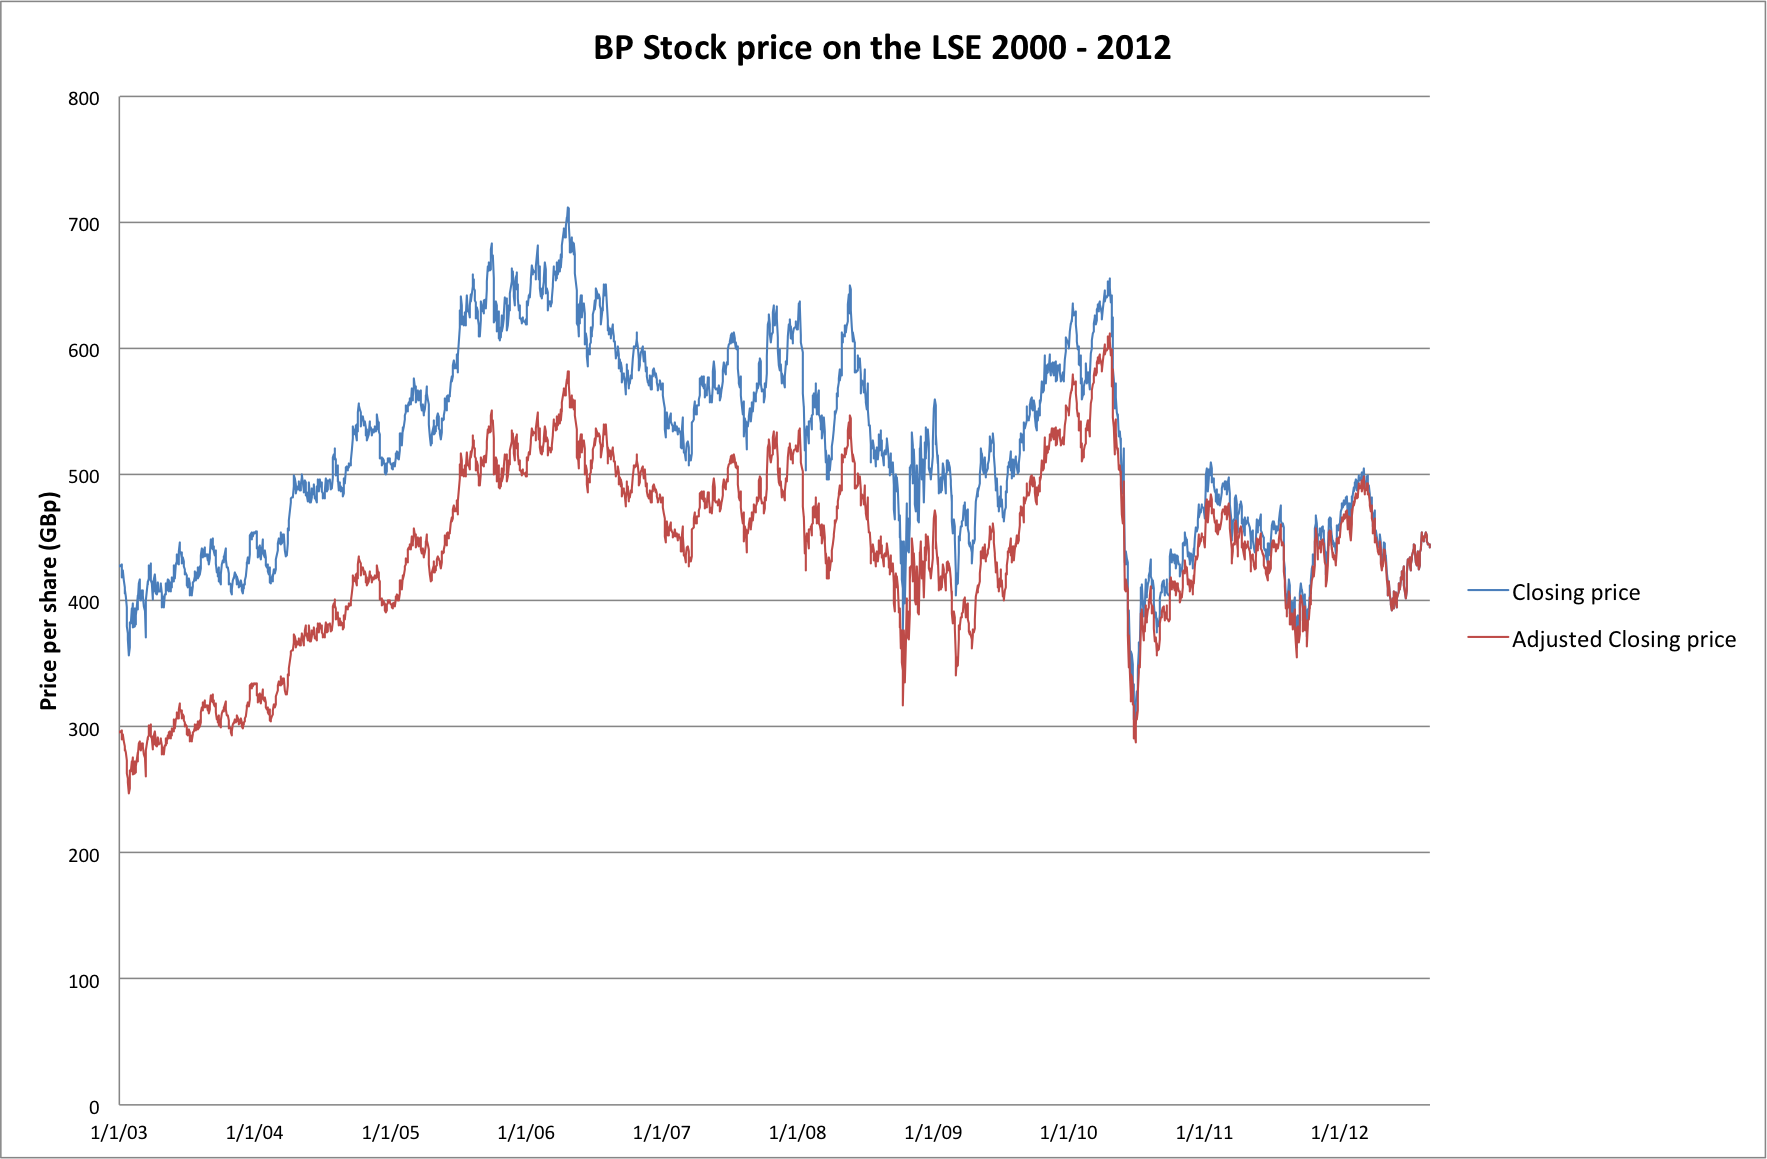 Http Commons Wikimedia Org Wiki File Bp Stock Price Lse 2000 2012 Png